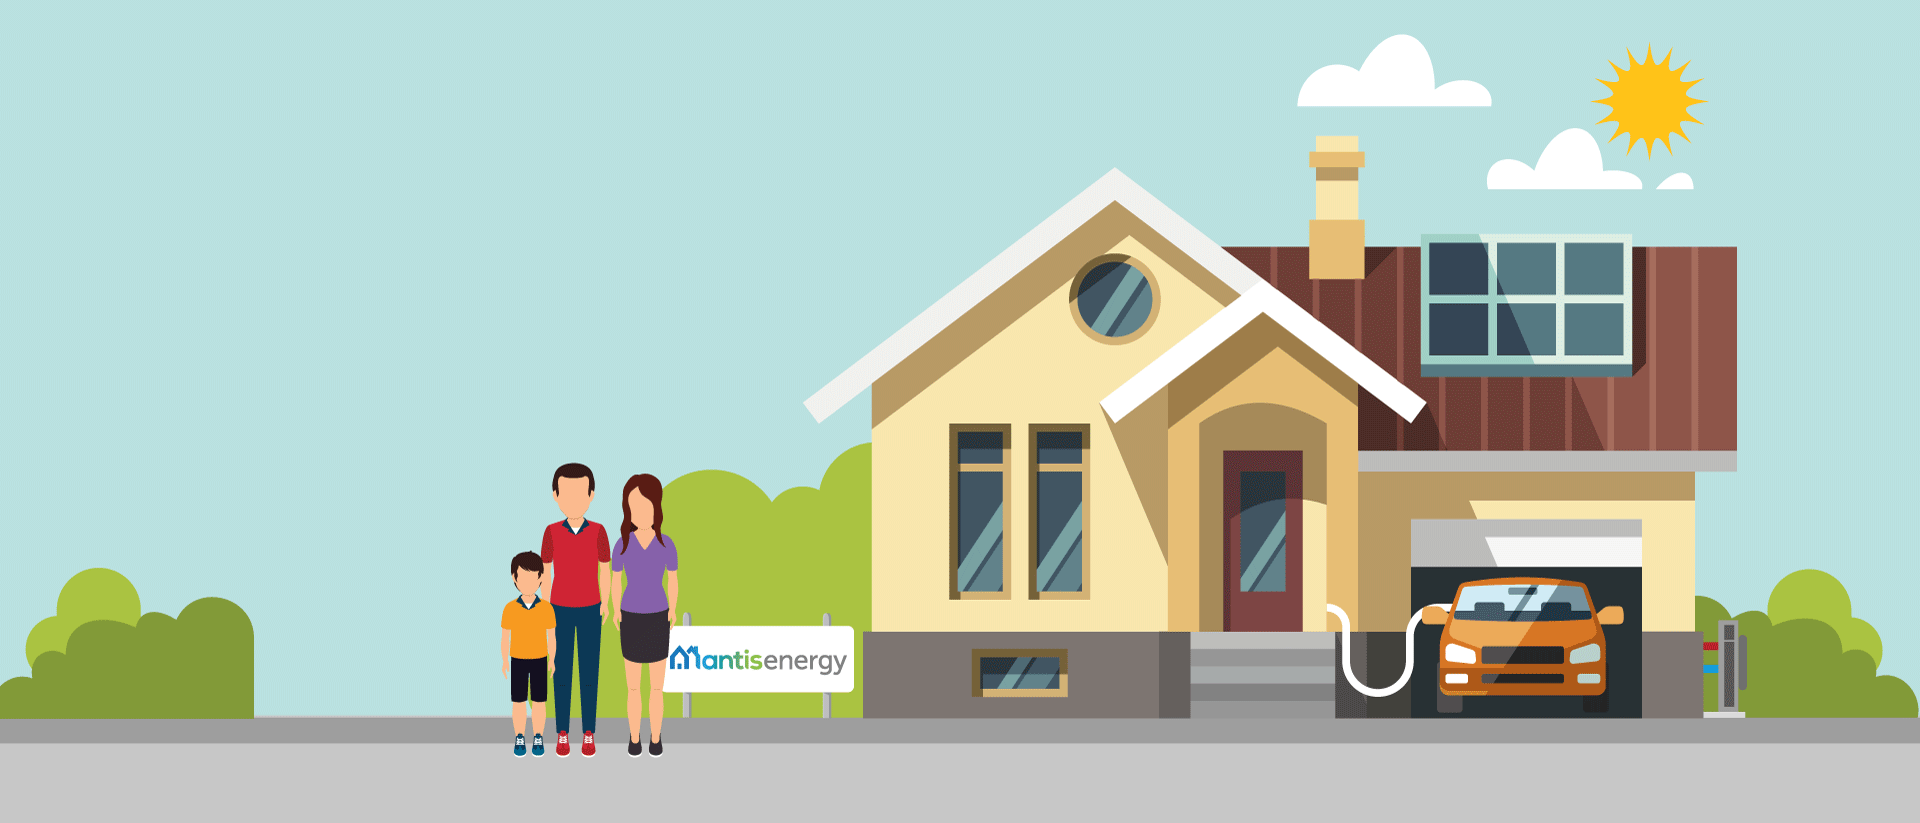 Mantis Energy Case Study - Family outside energy efficient home